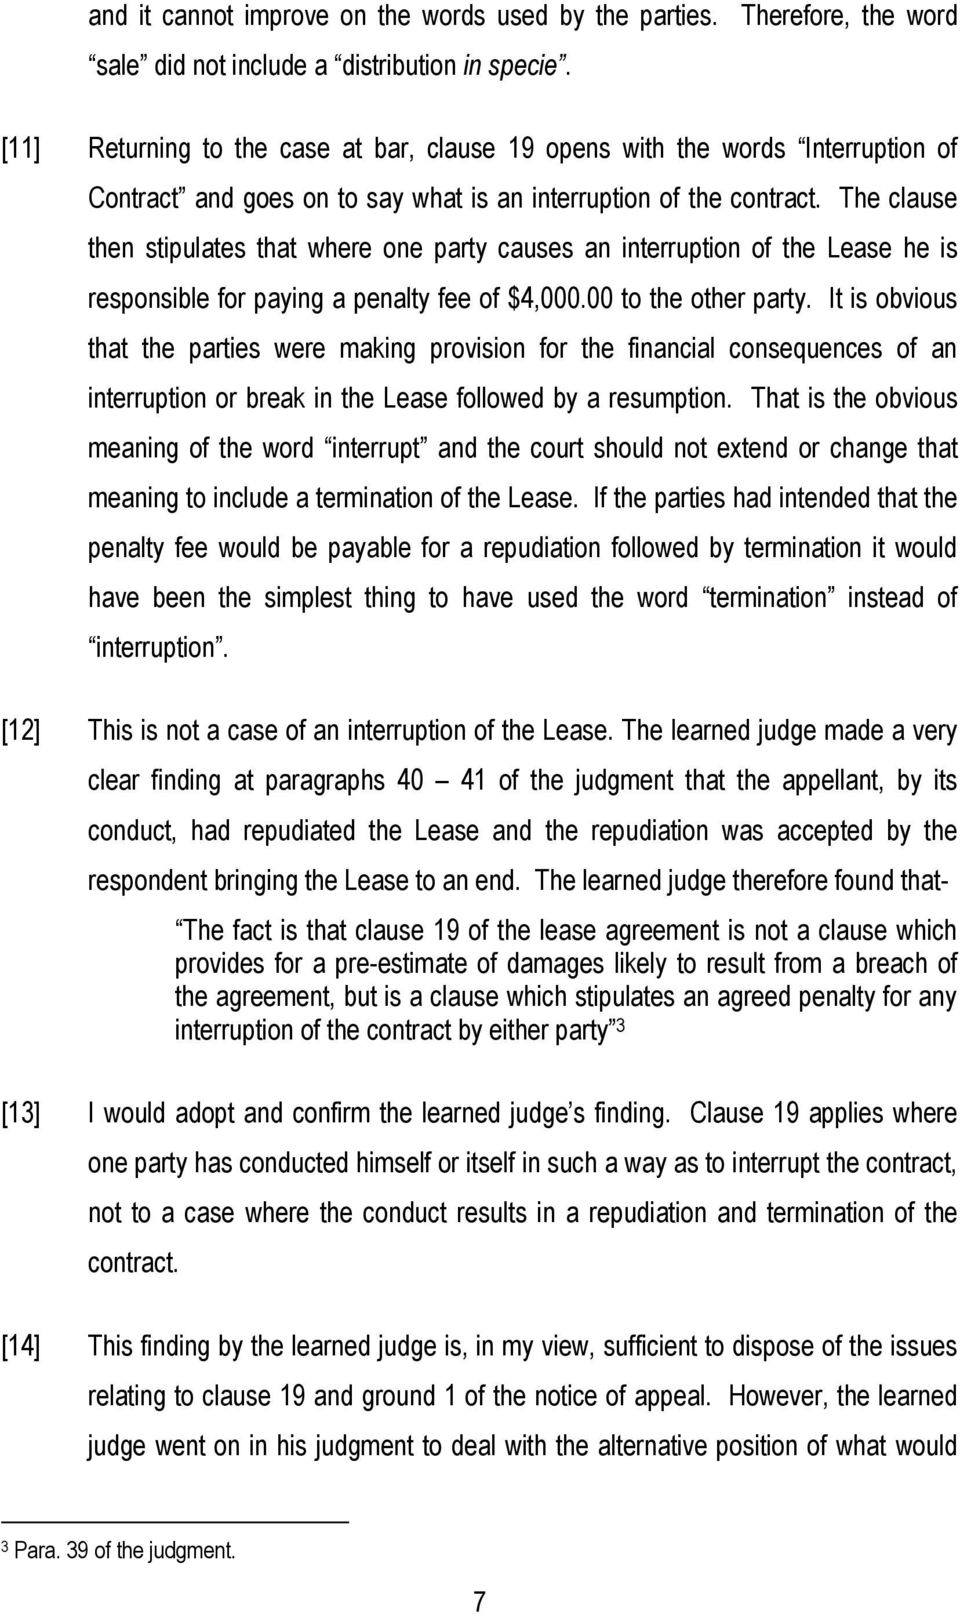 The clause then stipulates that where one party causes an interruption of the Lease he is responsible for paying a penalty fee of $4,000.00 to the other party.